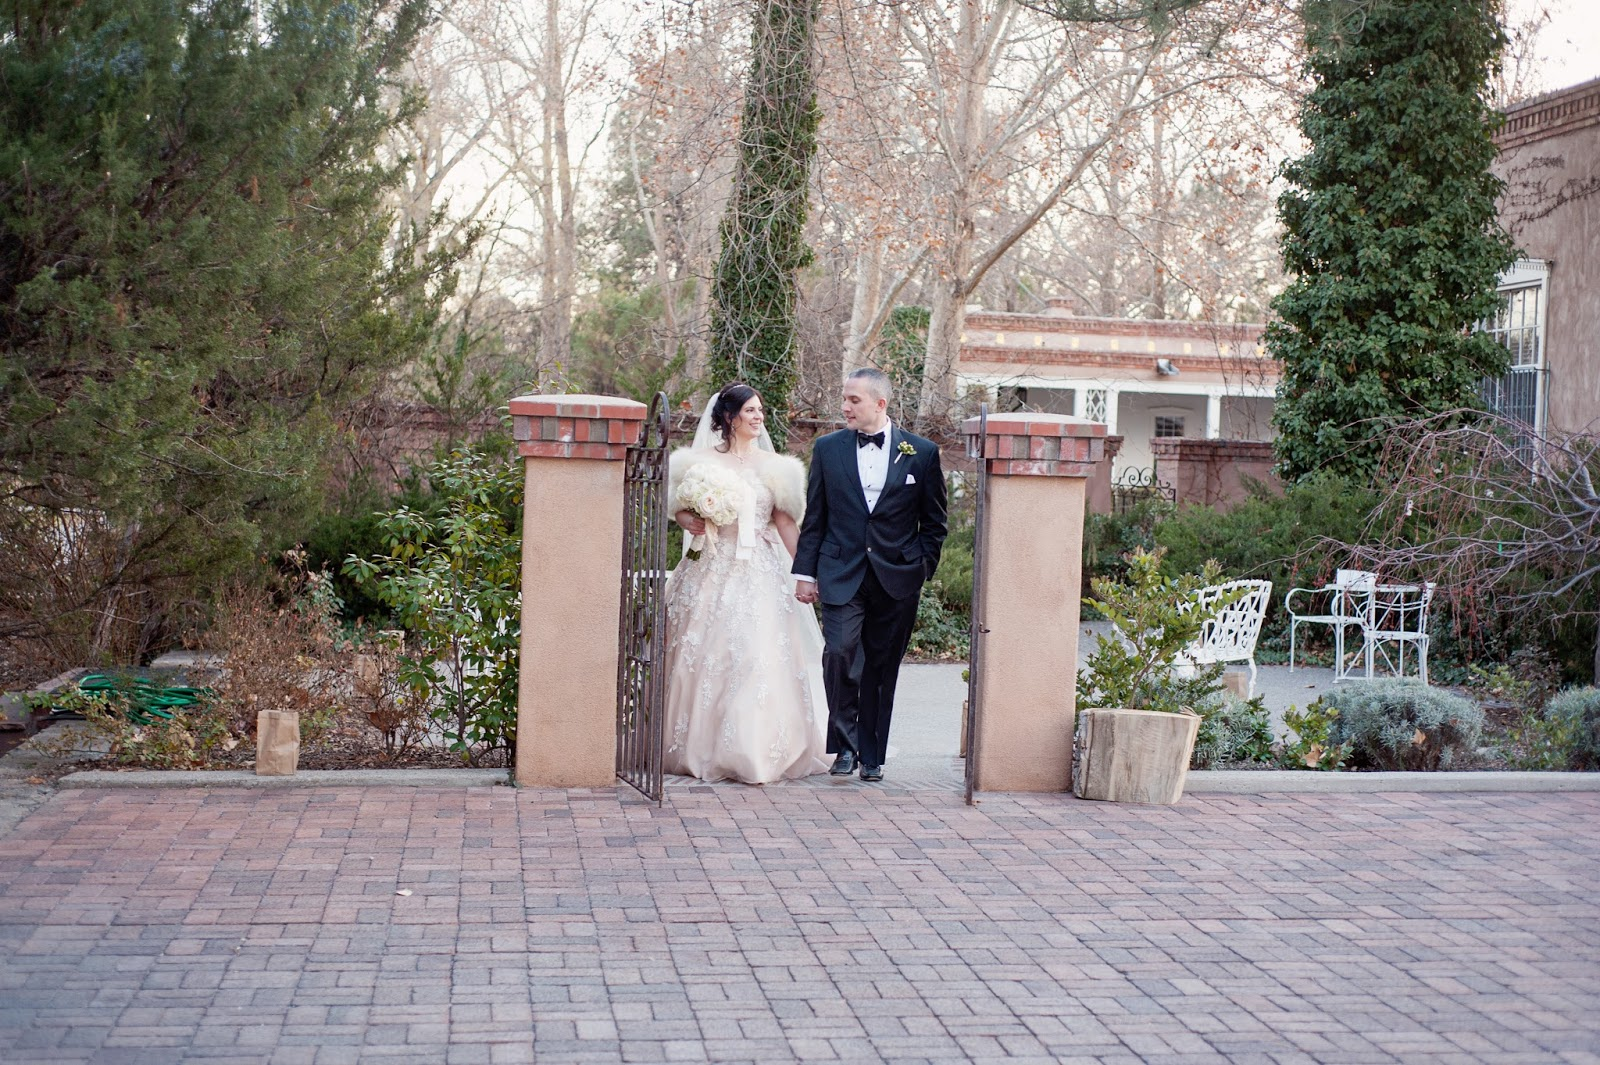 New Mexico wedding photographers, photographers in albuquerque, wedding photographers in albuquerque, weddings at los poblanos, Los Poblanos Historic Inn, Los Poblanos weddings, Winter weddings, christmas weddings, weddings in winter, wedding photography in winter